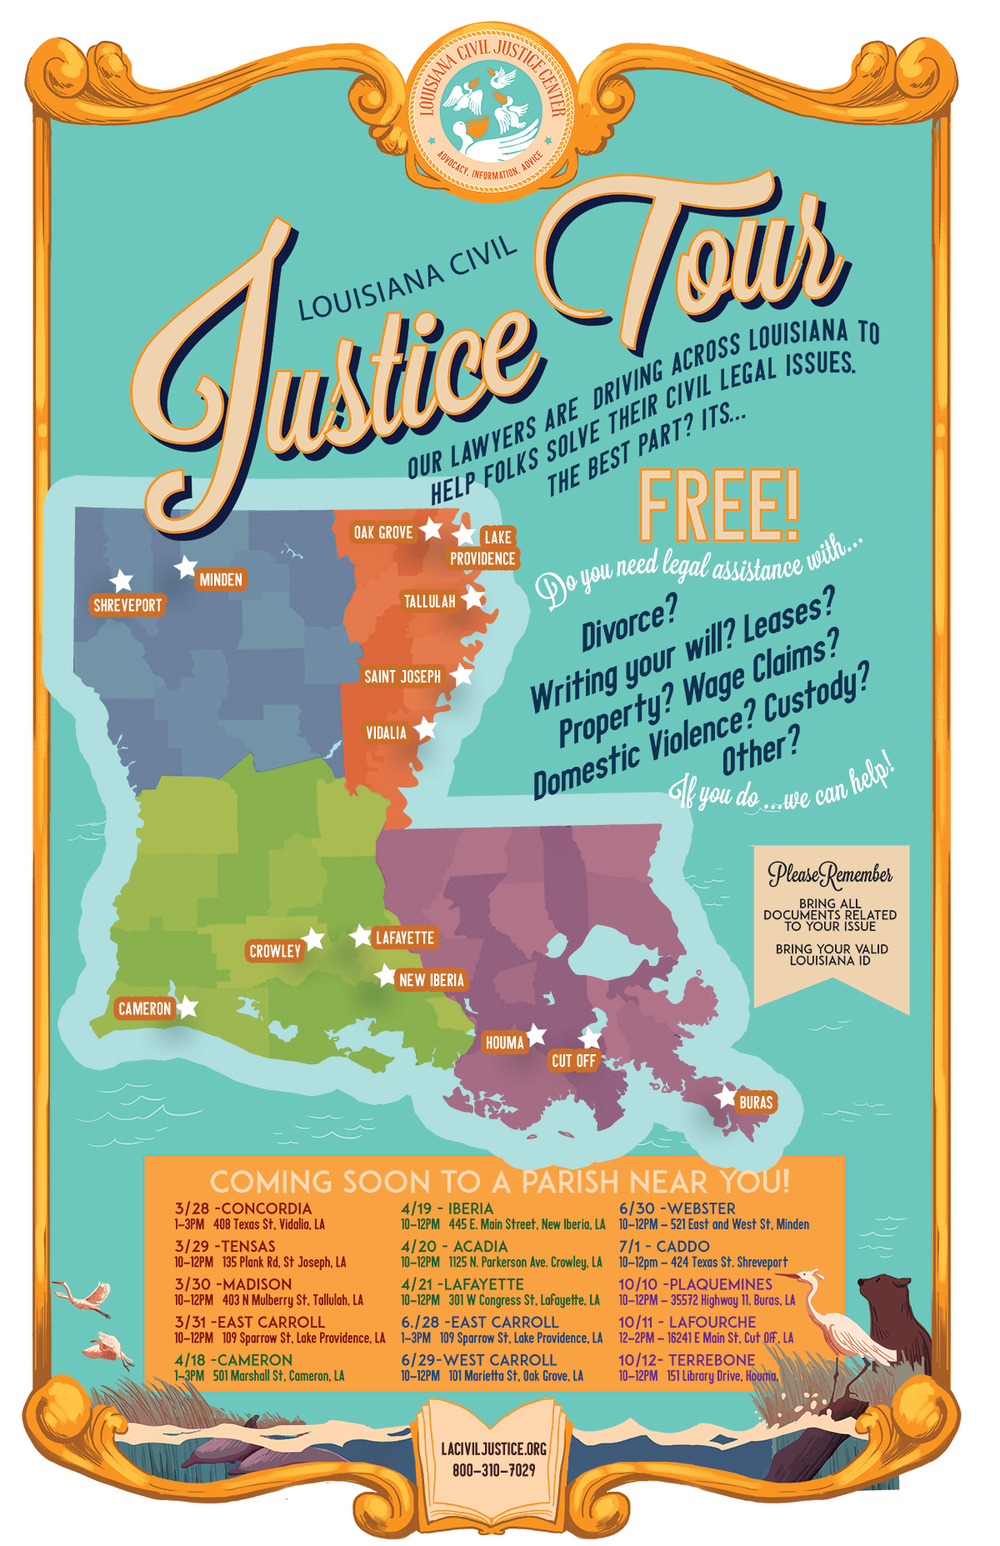 Louisiana Civil Justice Tour Poster